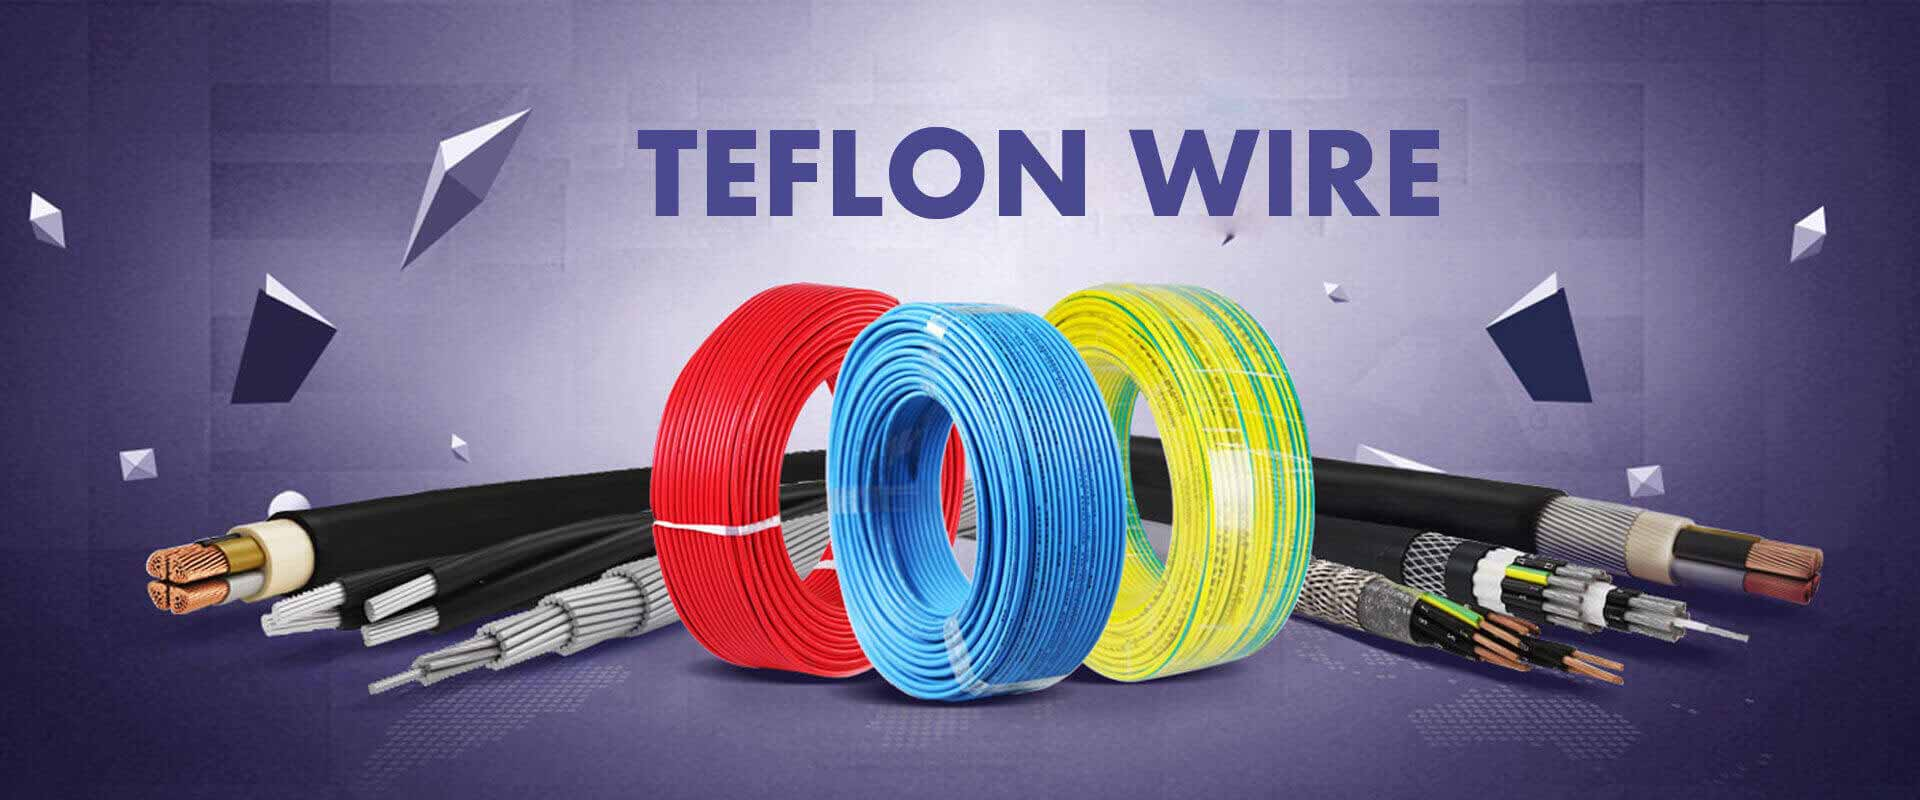 Teflon Wire In Iran